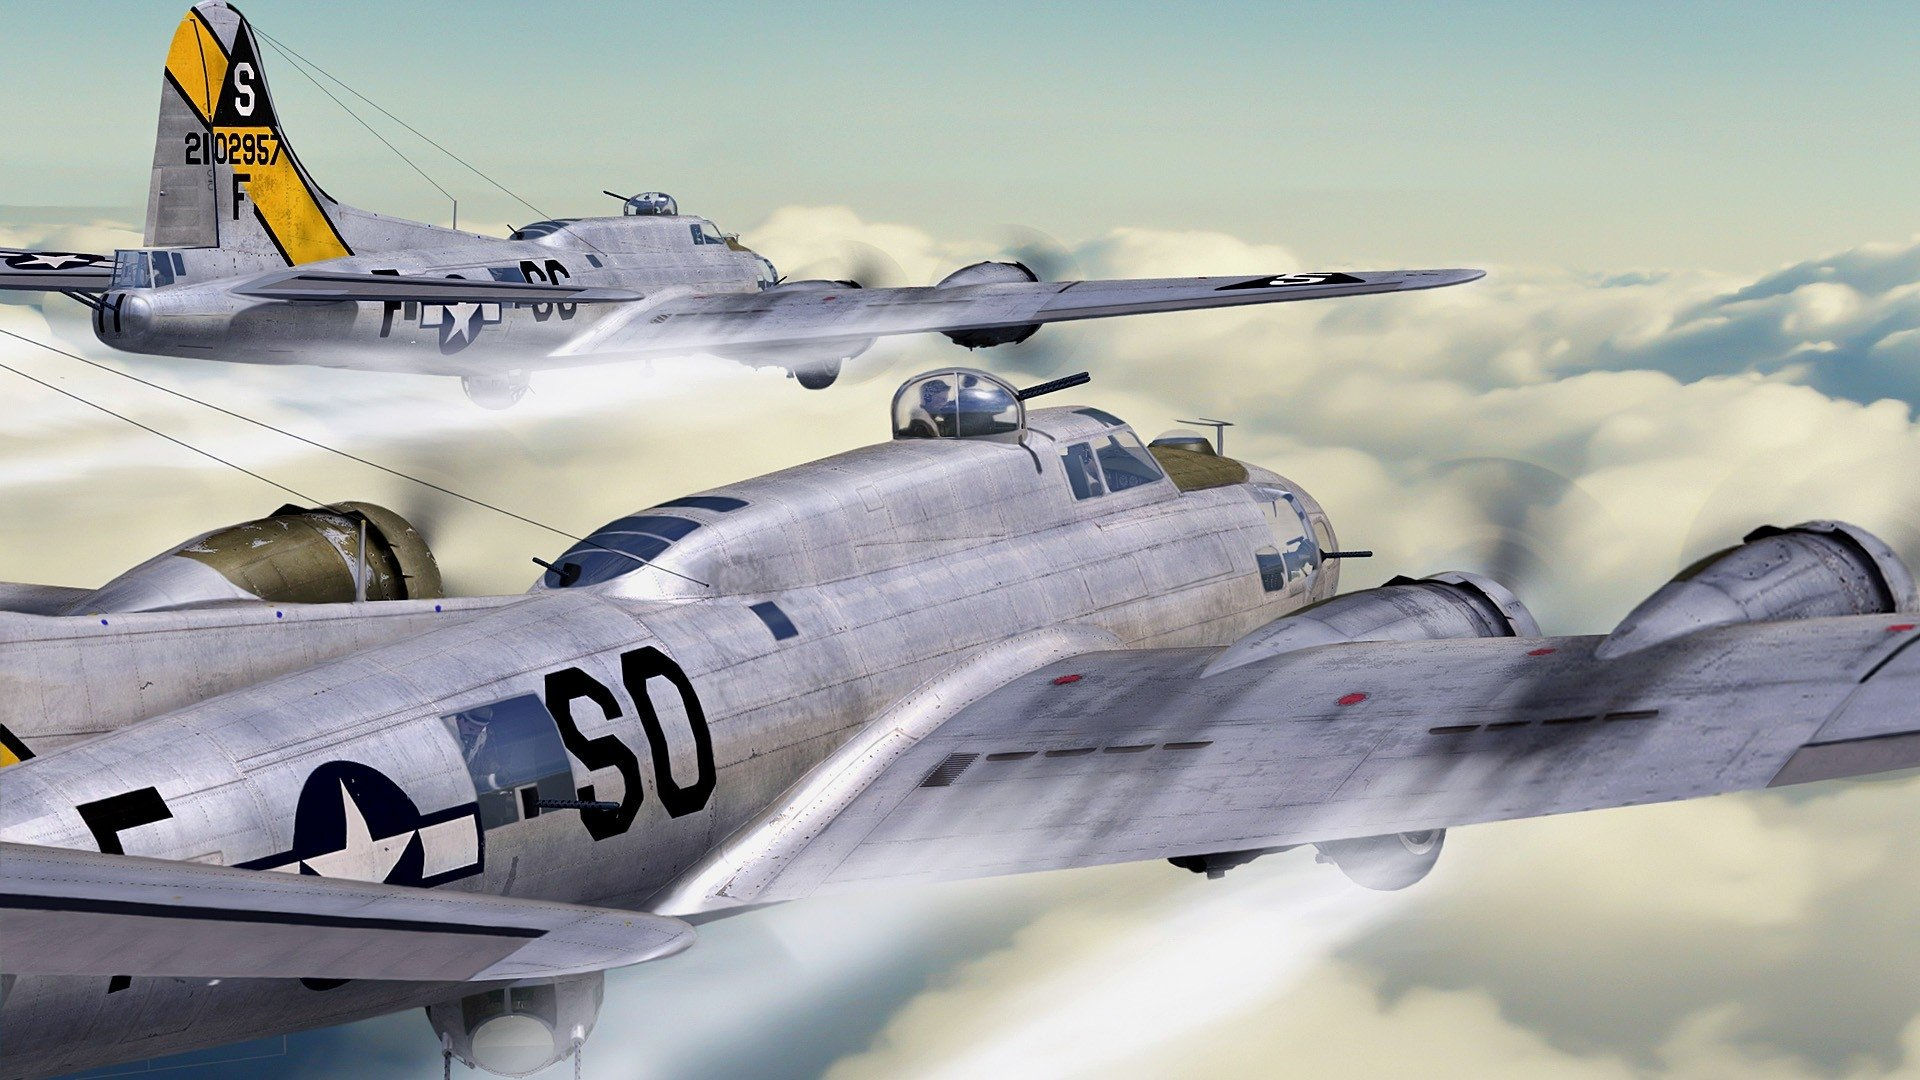 1097 aircraft hd wallpapers | backgrounds - wallpaper abyss